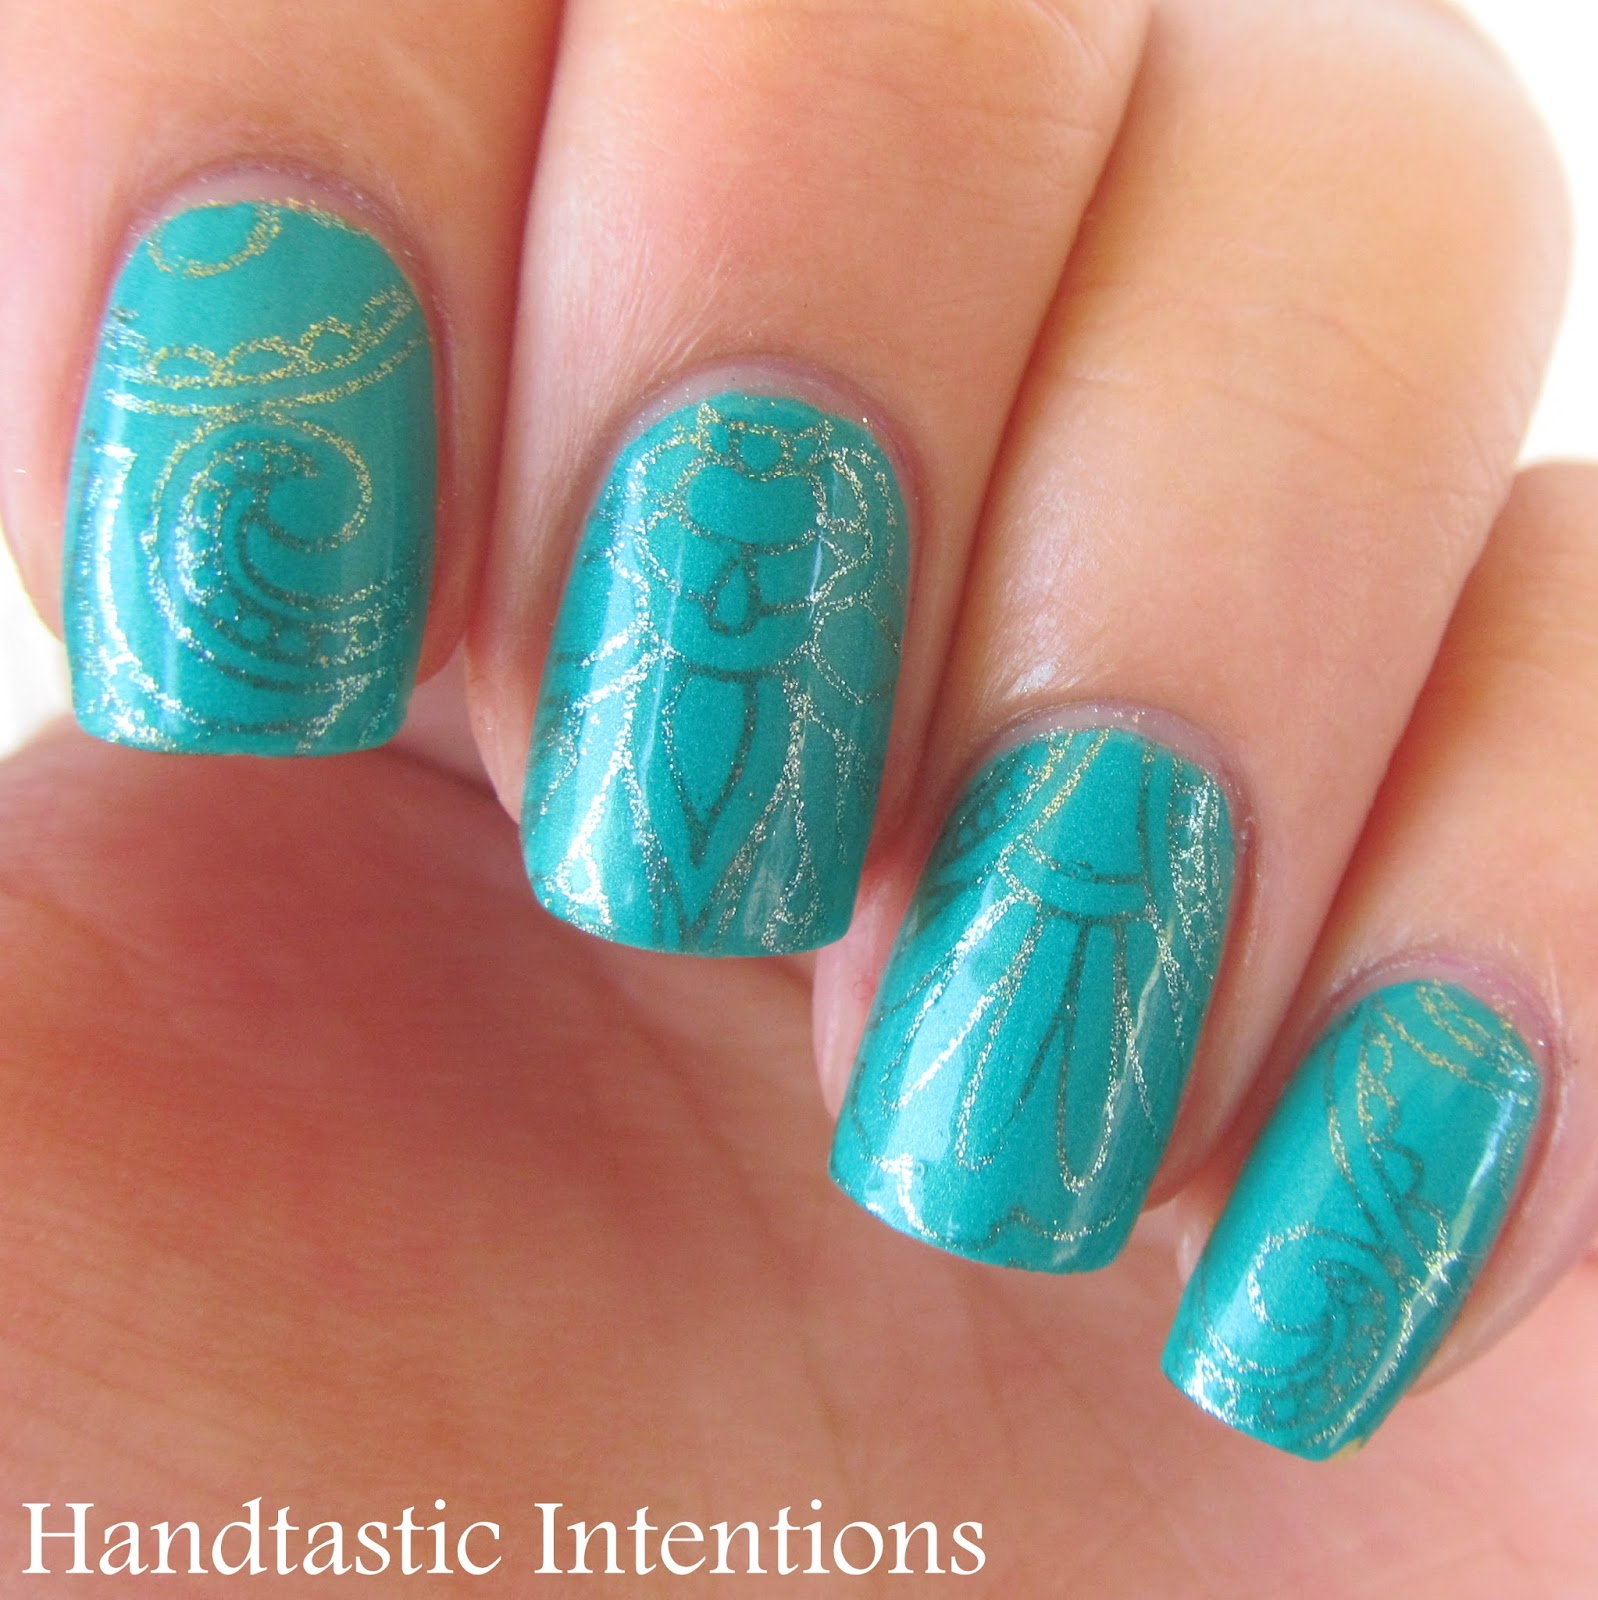 Handtastic Intentions: Nail Art: Turquoise Stamping